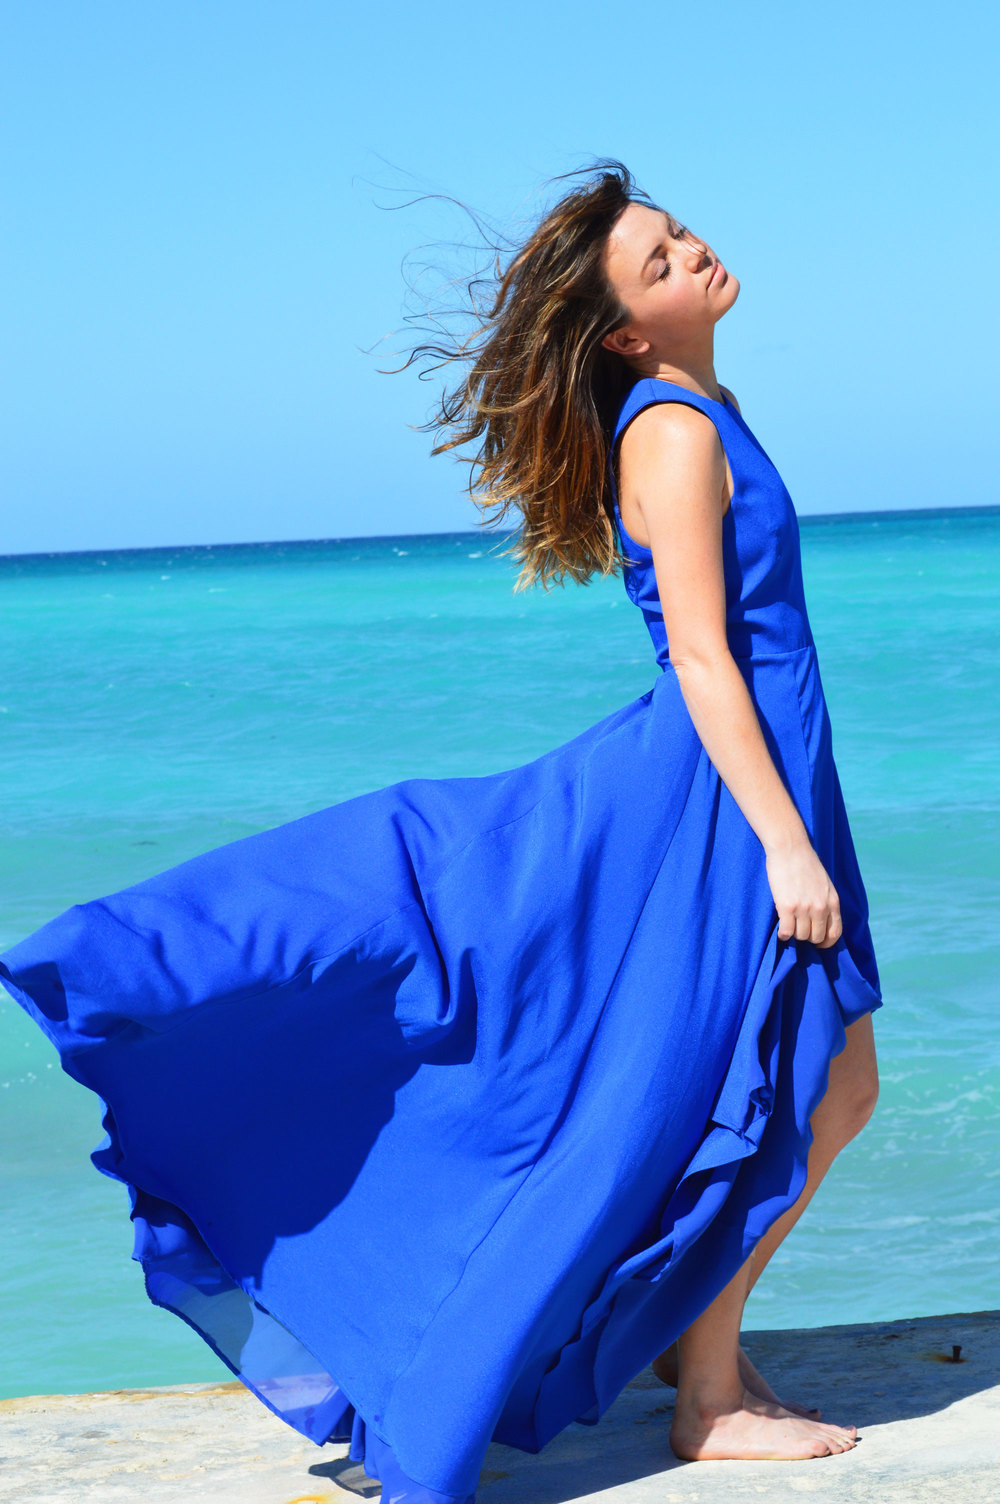 Naven-Siren-Dress-Vegas-Blue-Revolve-Clothing-Style-Vacation-Nassau-Bahamas-Long-Dress-itsnbd-Beach-girl-sea-blogger.jpeg